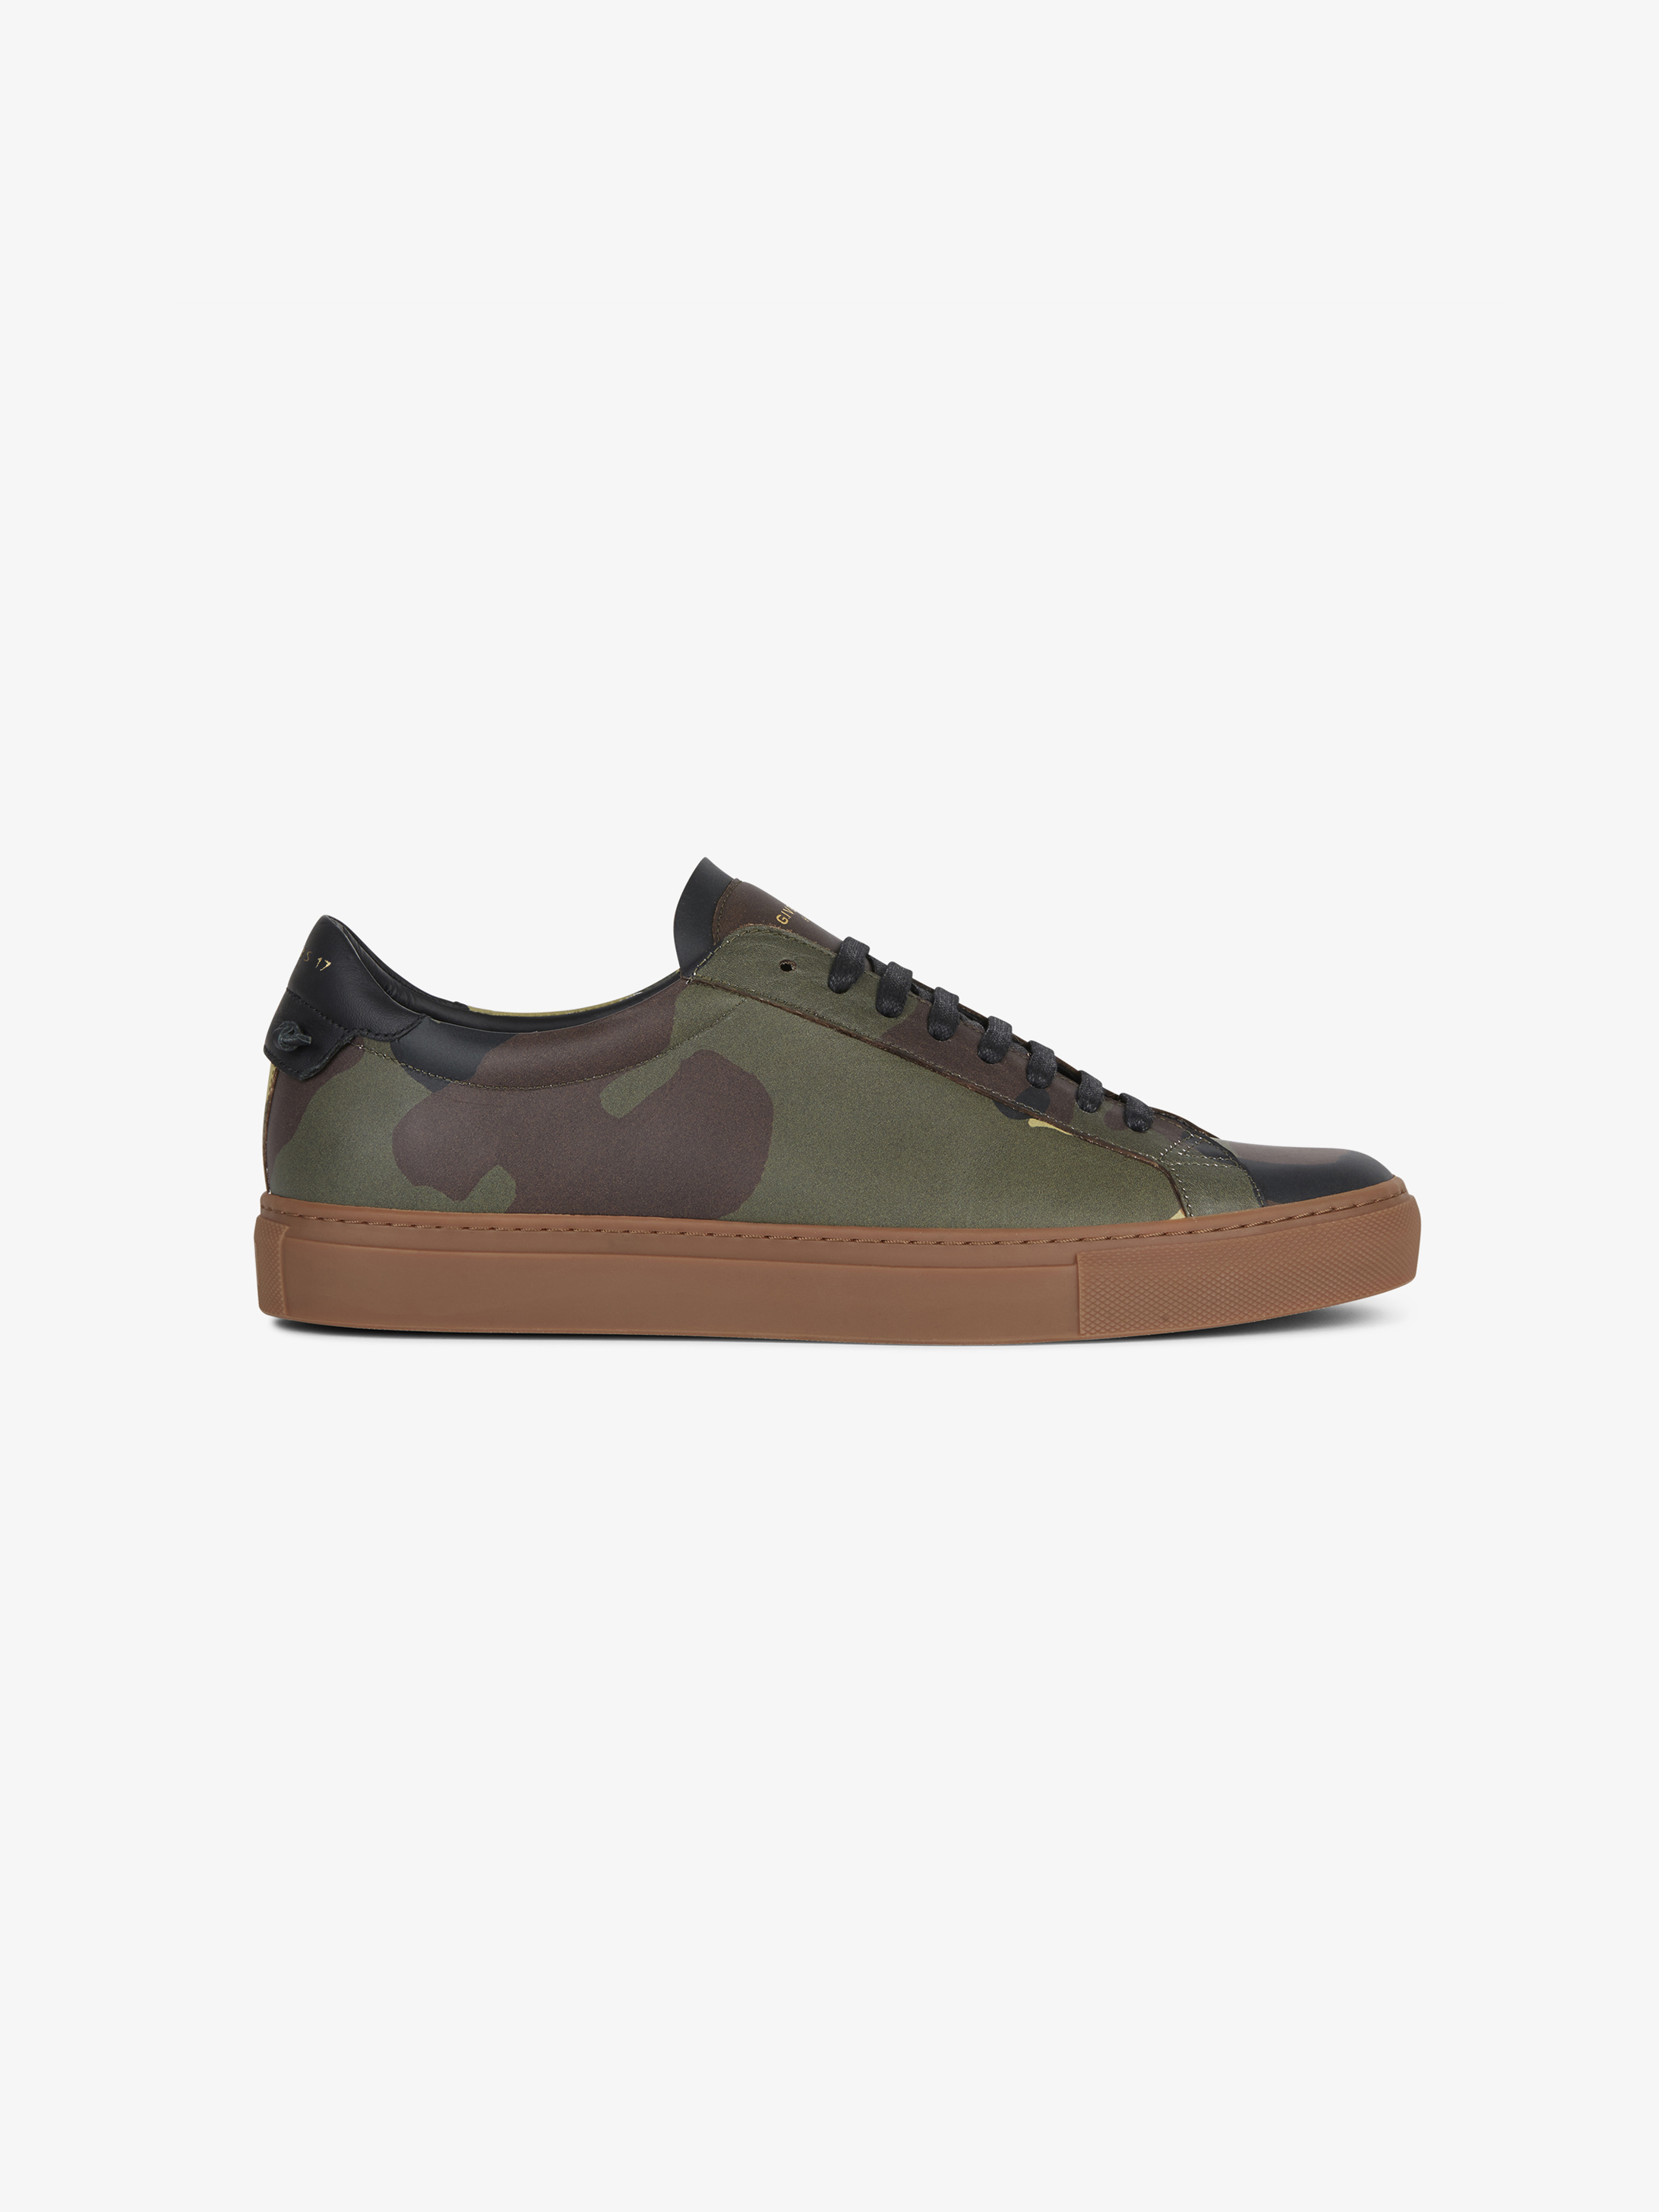 Sneaker con stampa camouflage in pelle